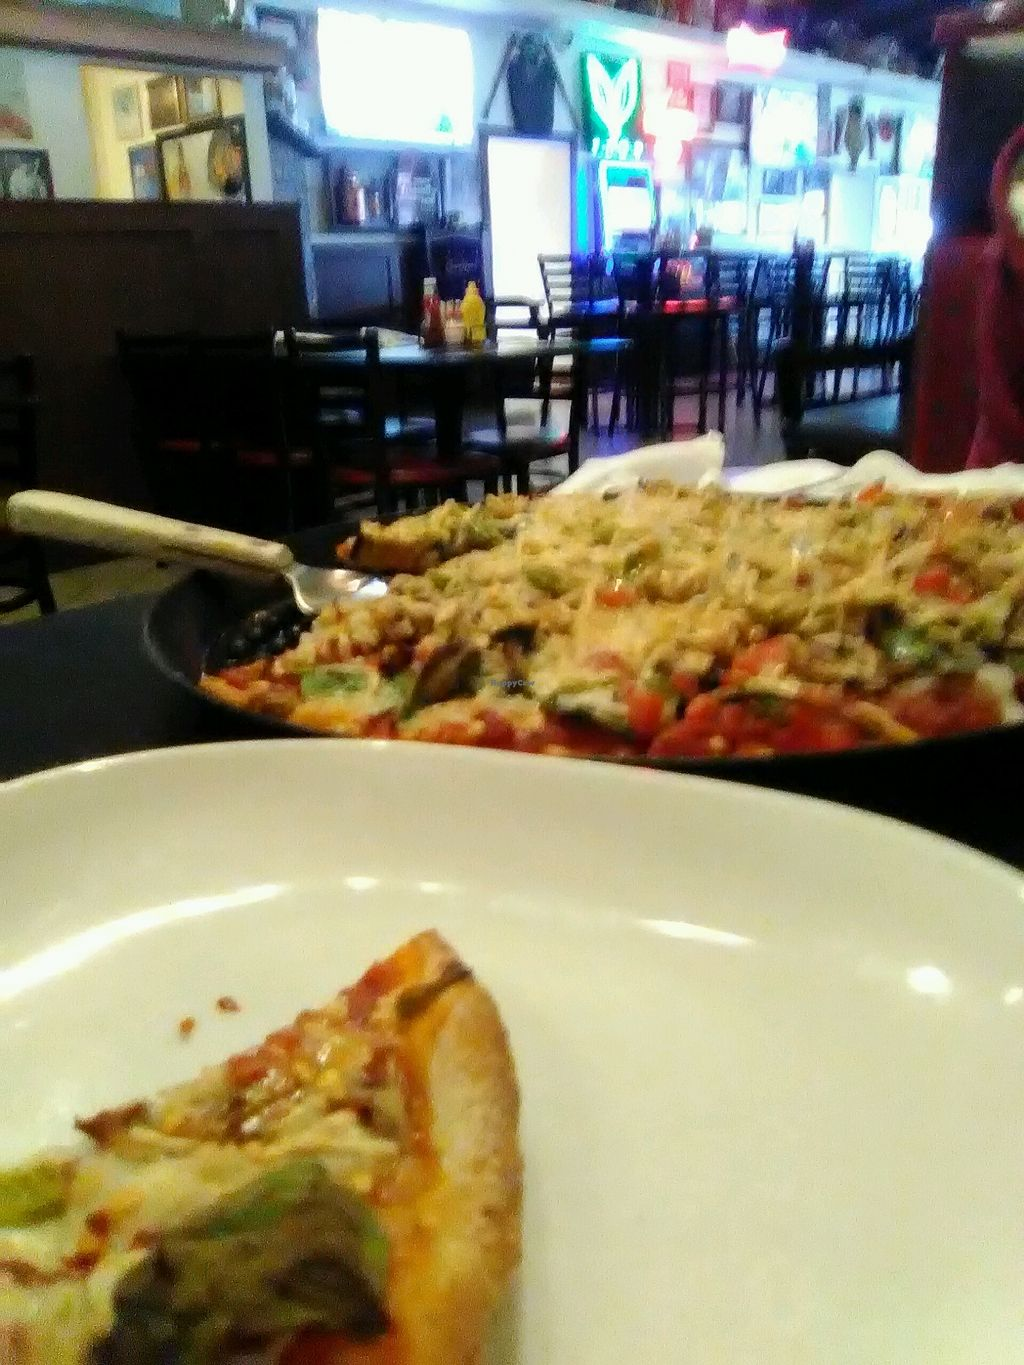 """Photo of Gelsosomo's Pizzeria  by <a href=""""/members/profile/Valhaclaw"""">Valhaclaw</a> <br/>Order the veggie pizza with the vegan cheese option <br/> March 31, 2018  - <a href='/contact/abuse/image/103986/379114'>Report</a>"""